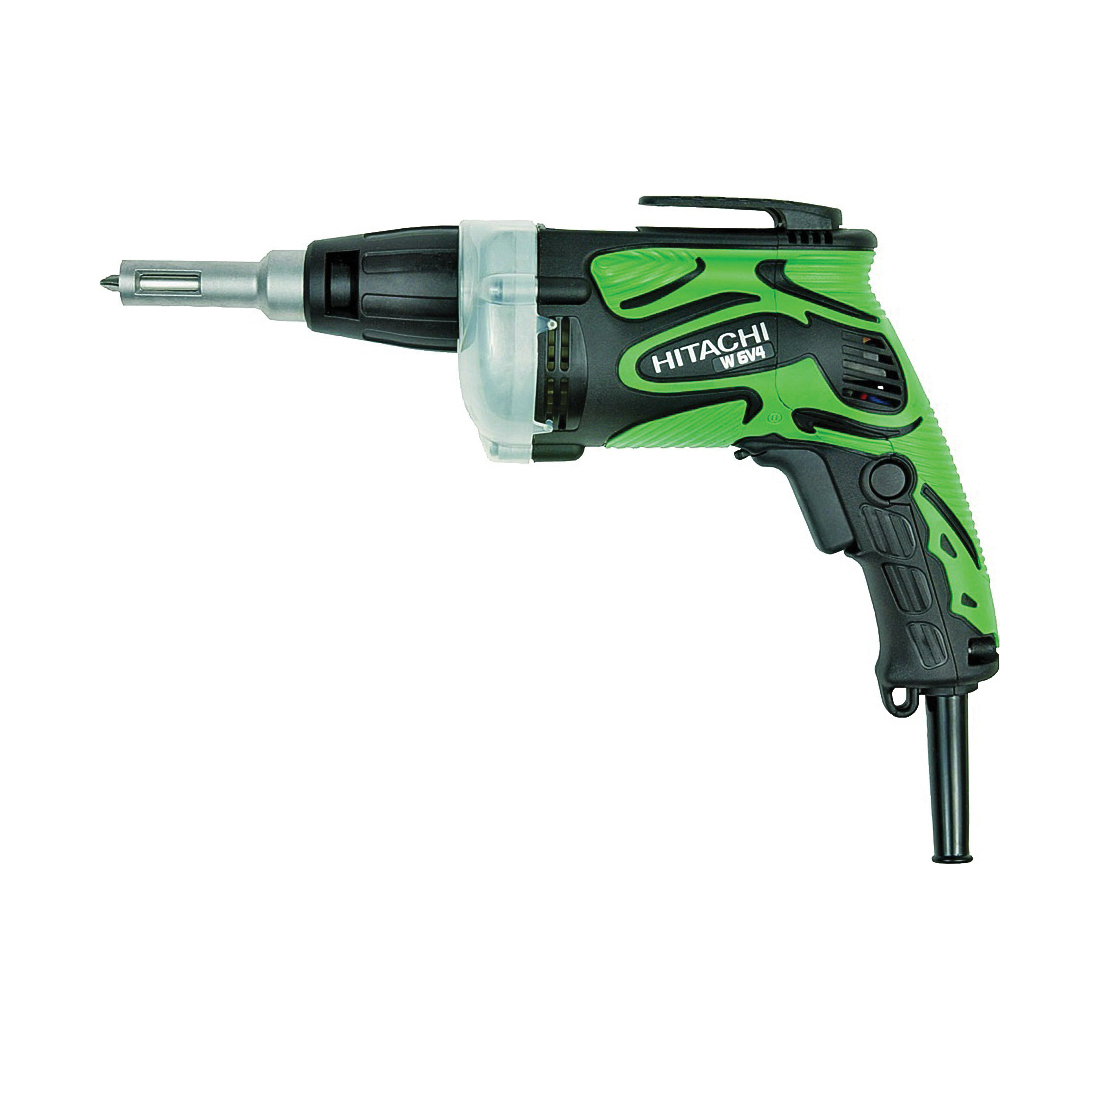 Picture of Metabo HPT W6V4M Drywall Screwdriver, 120 V, 1/4 in Chuck